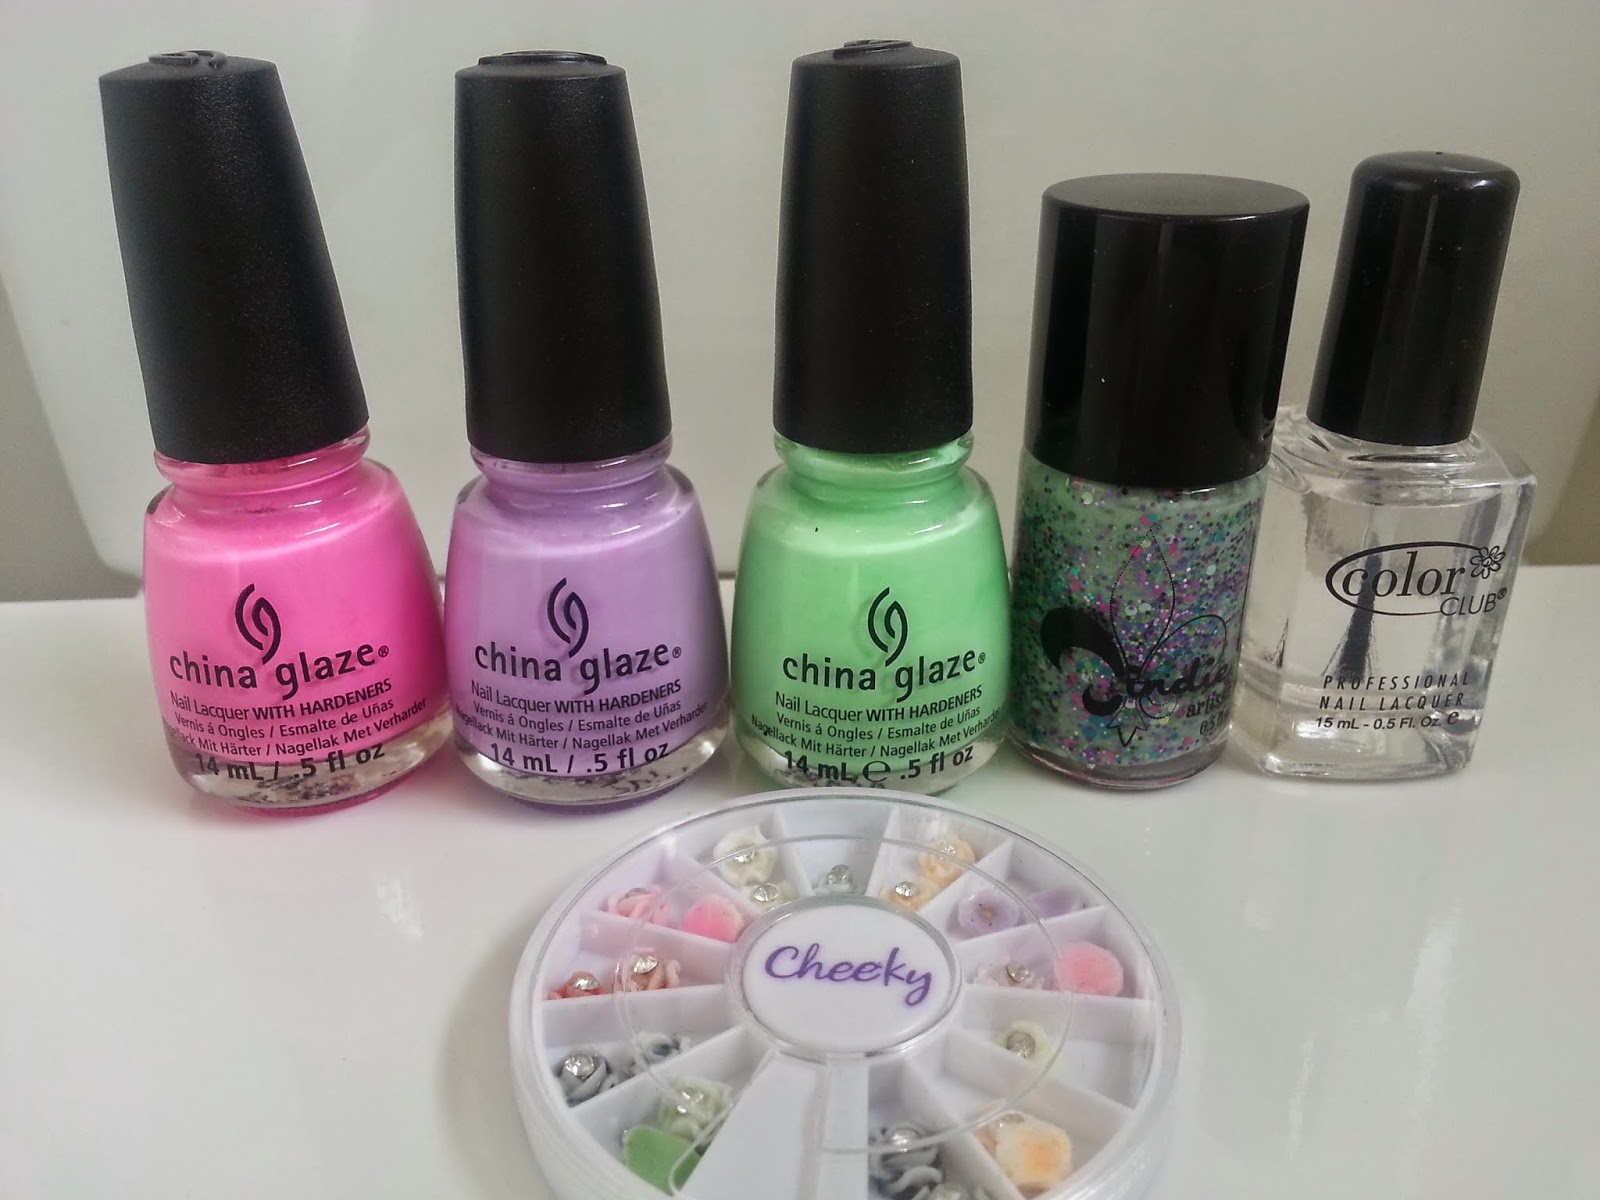 tri-polish-challenge-pink-purple-green-nails